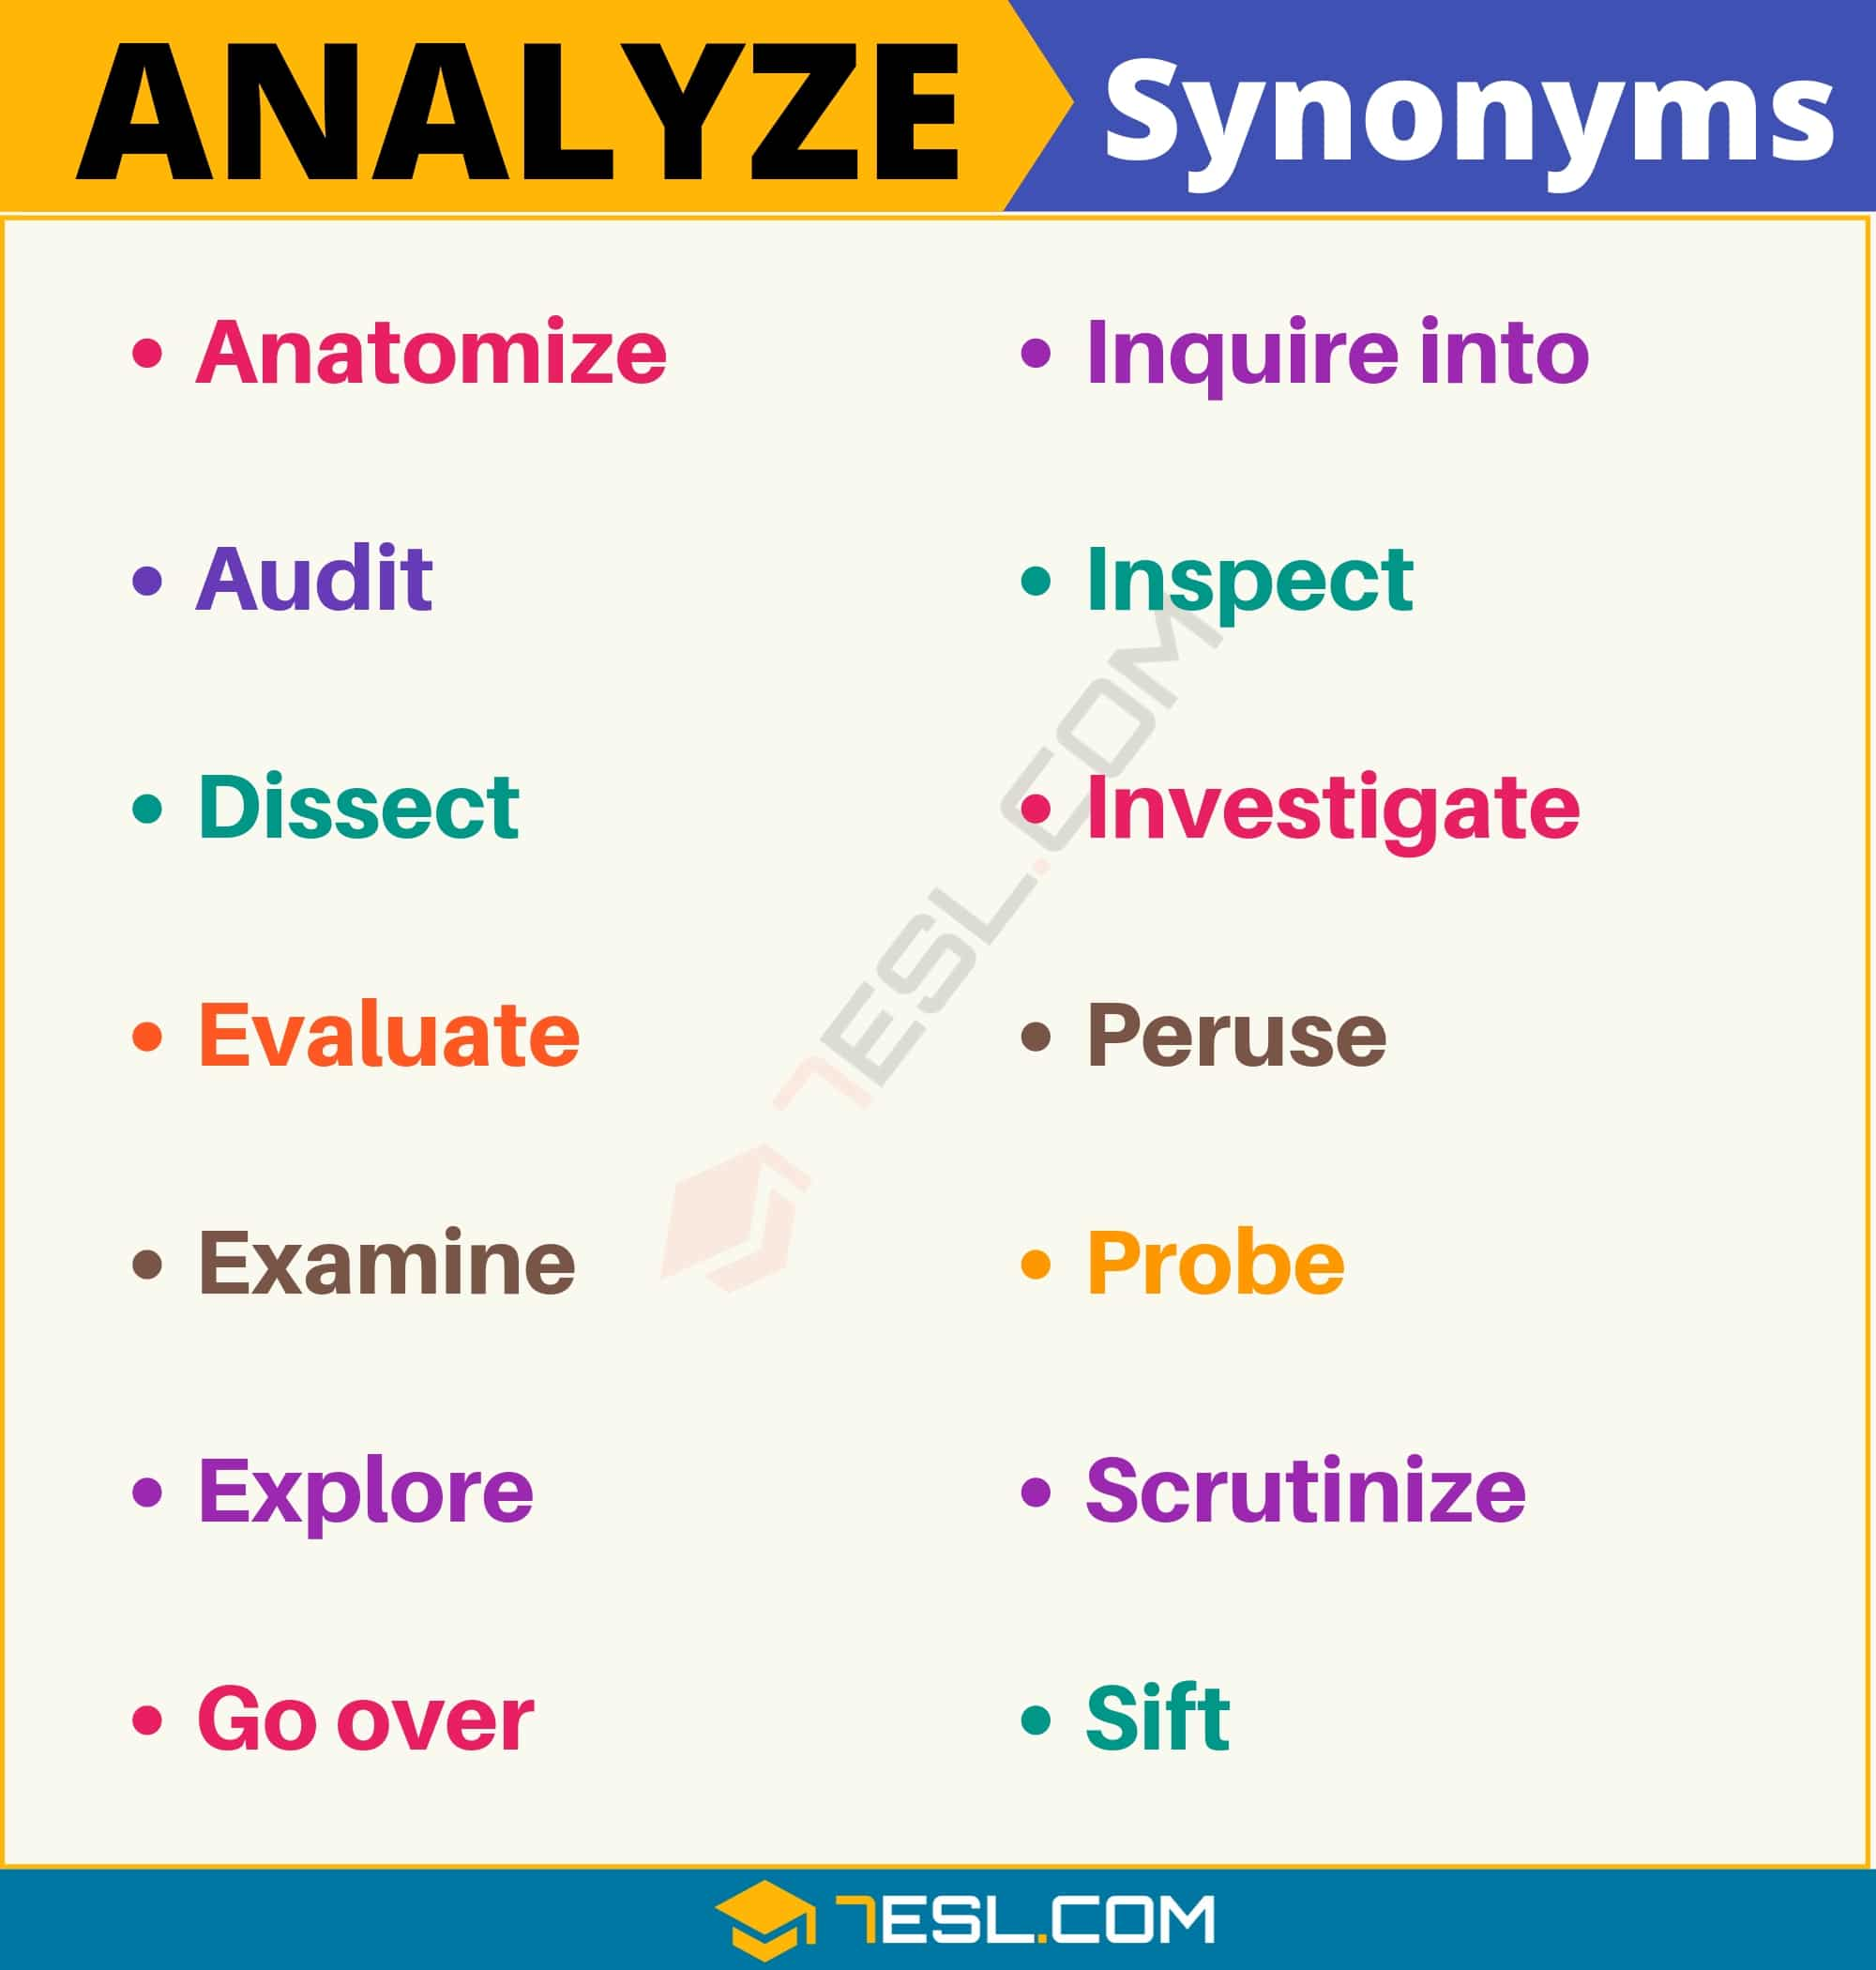 ANALYZE Synonym: List of 14 Synonyms for Analyze with Useful Examples